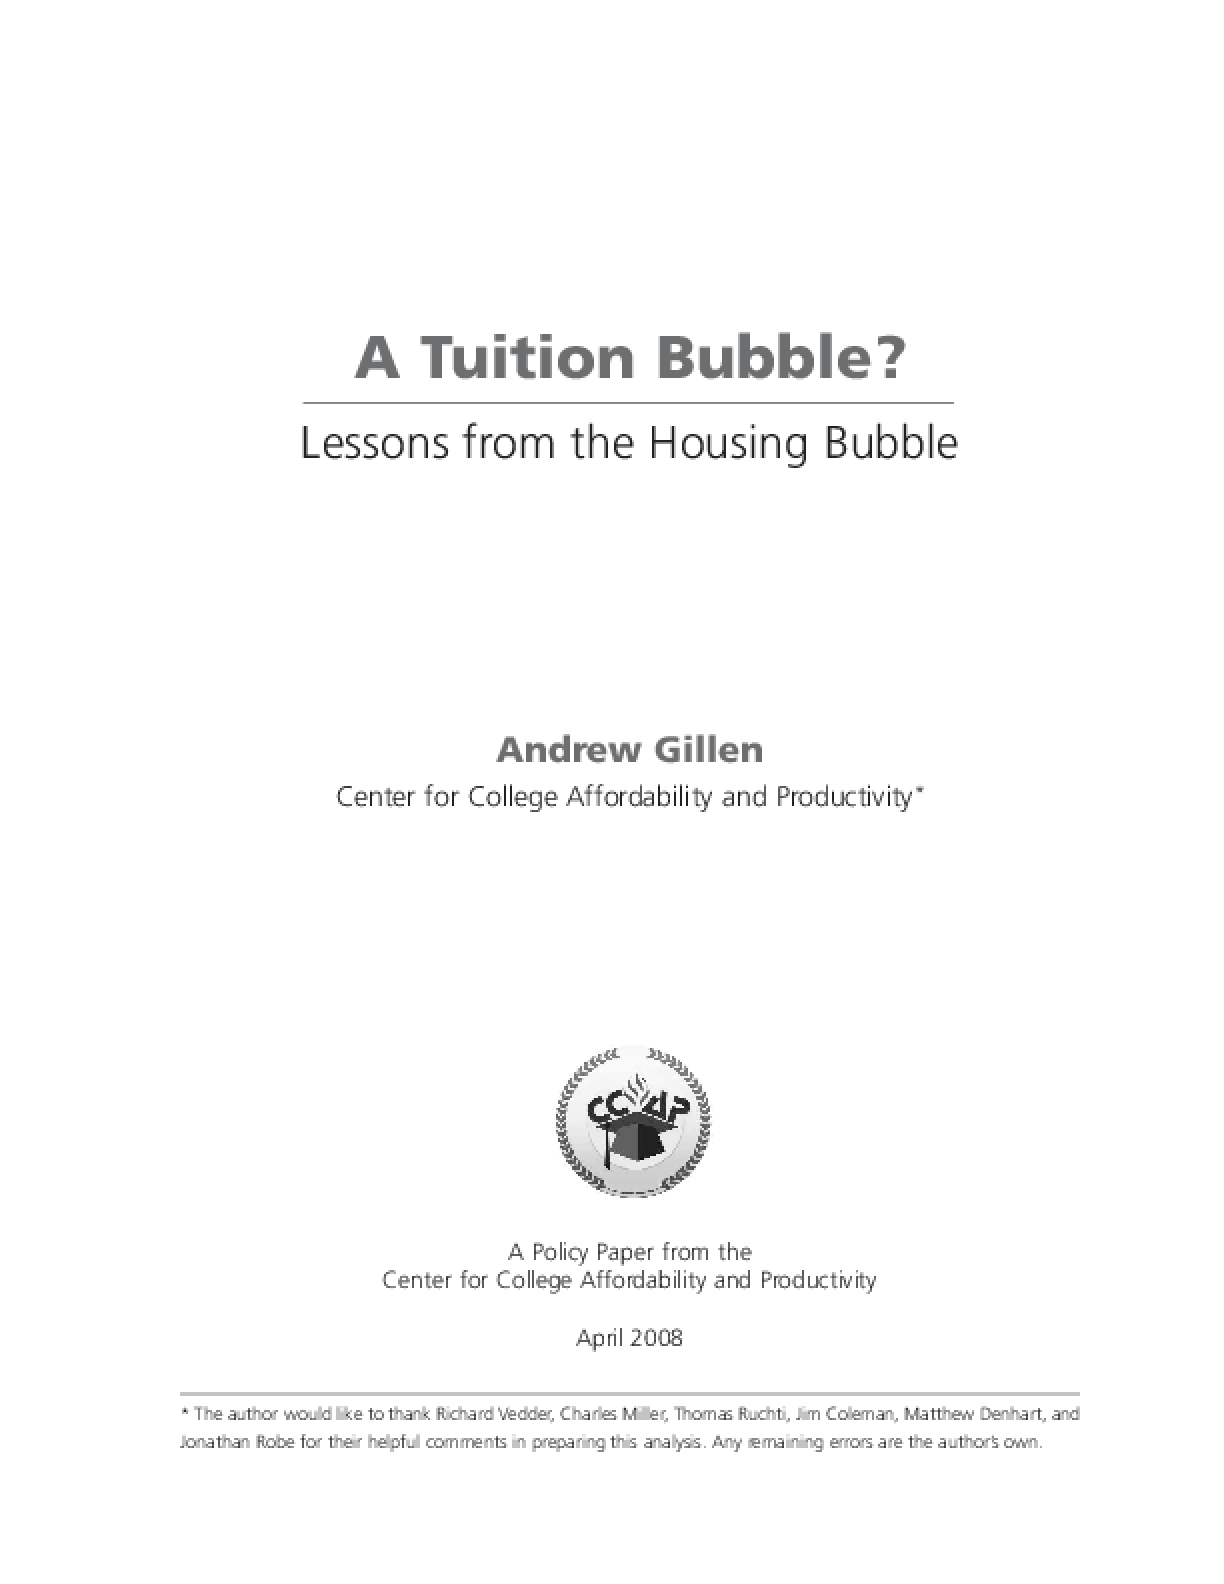 Tuition Bubble? Lessons from the Housing Market